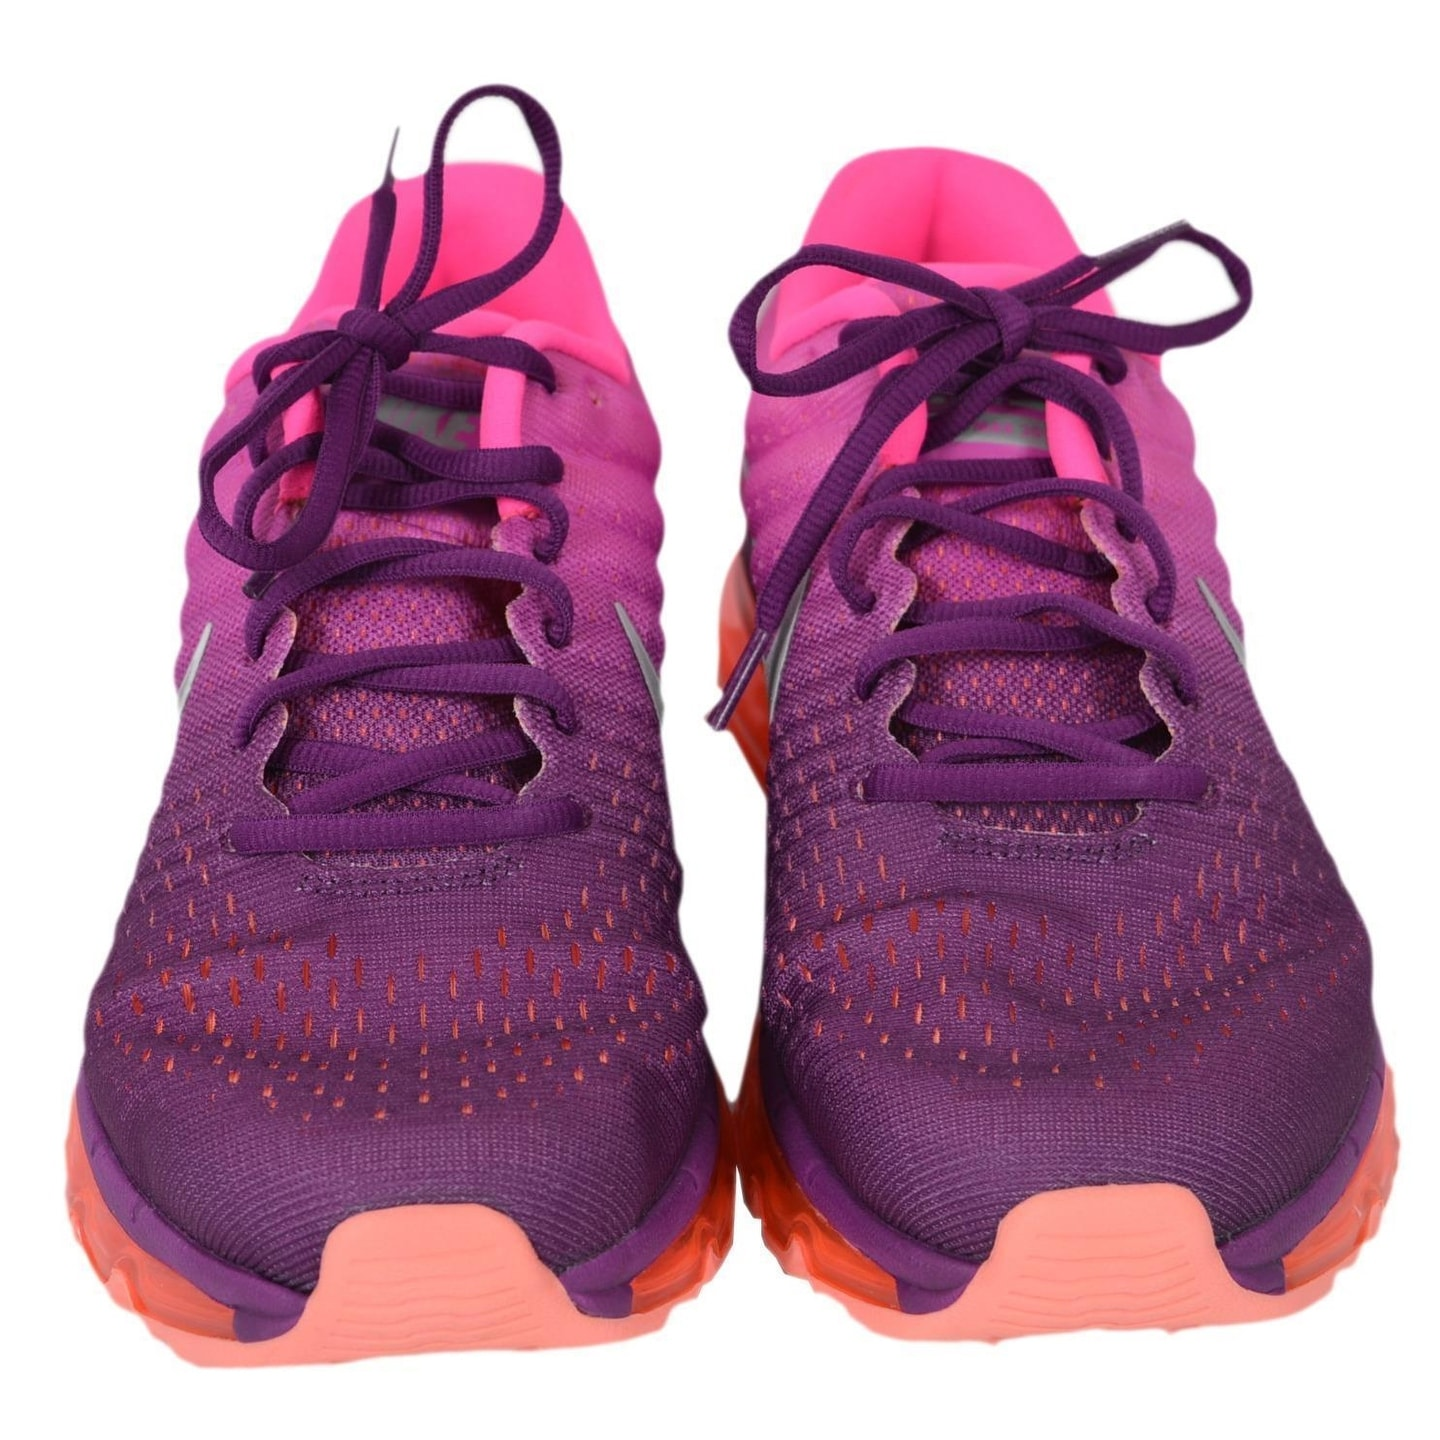 3886bf71aa9c8 Shop NIKE AIR MAX 2017 Ombre Pink Women s Running Tennis Shoes - Free  Shipping Today - Overstock - 22404406